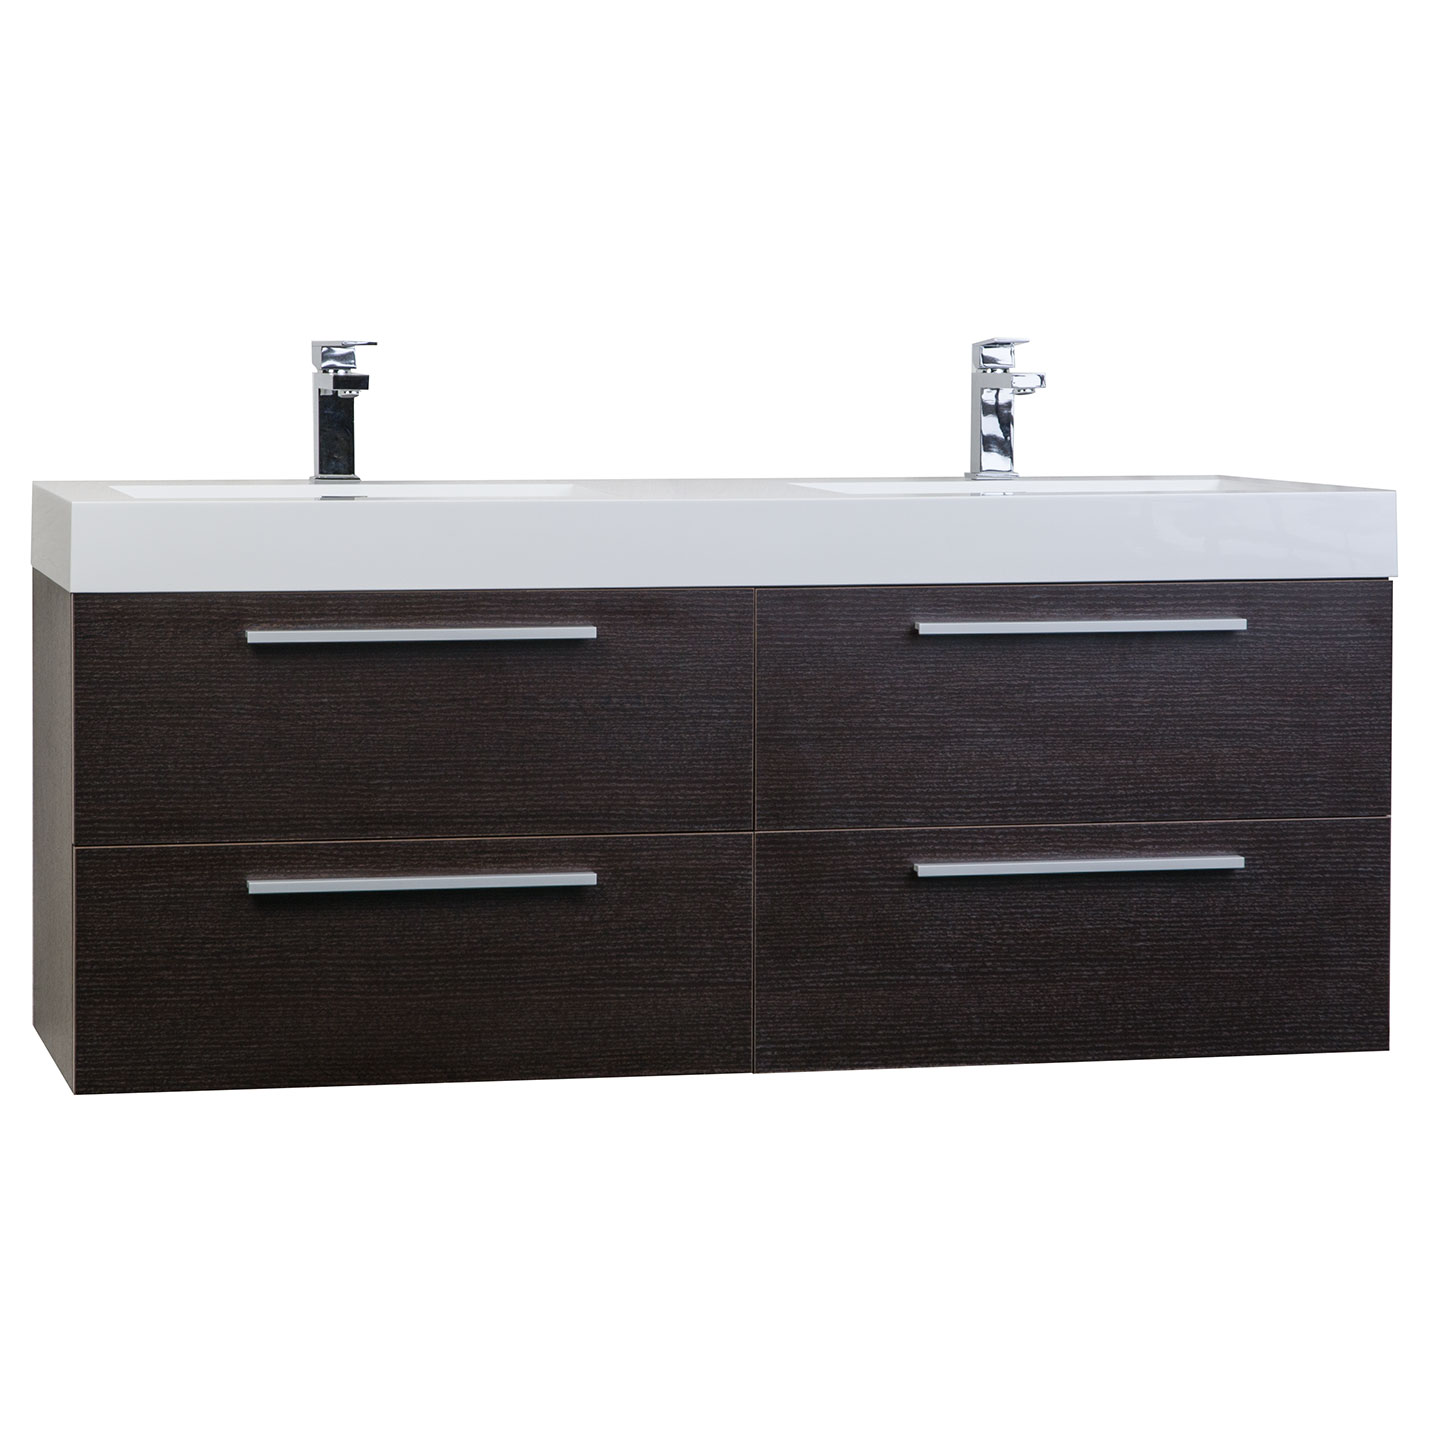 54 bathroom vanity cabinet 54 quot modern sink vanity set in espresso tn b1380 wg 15326